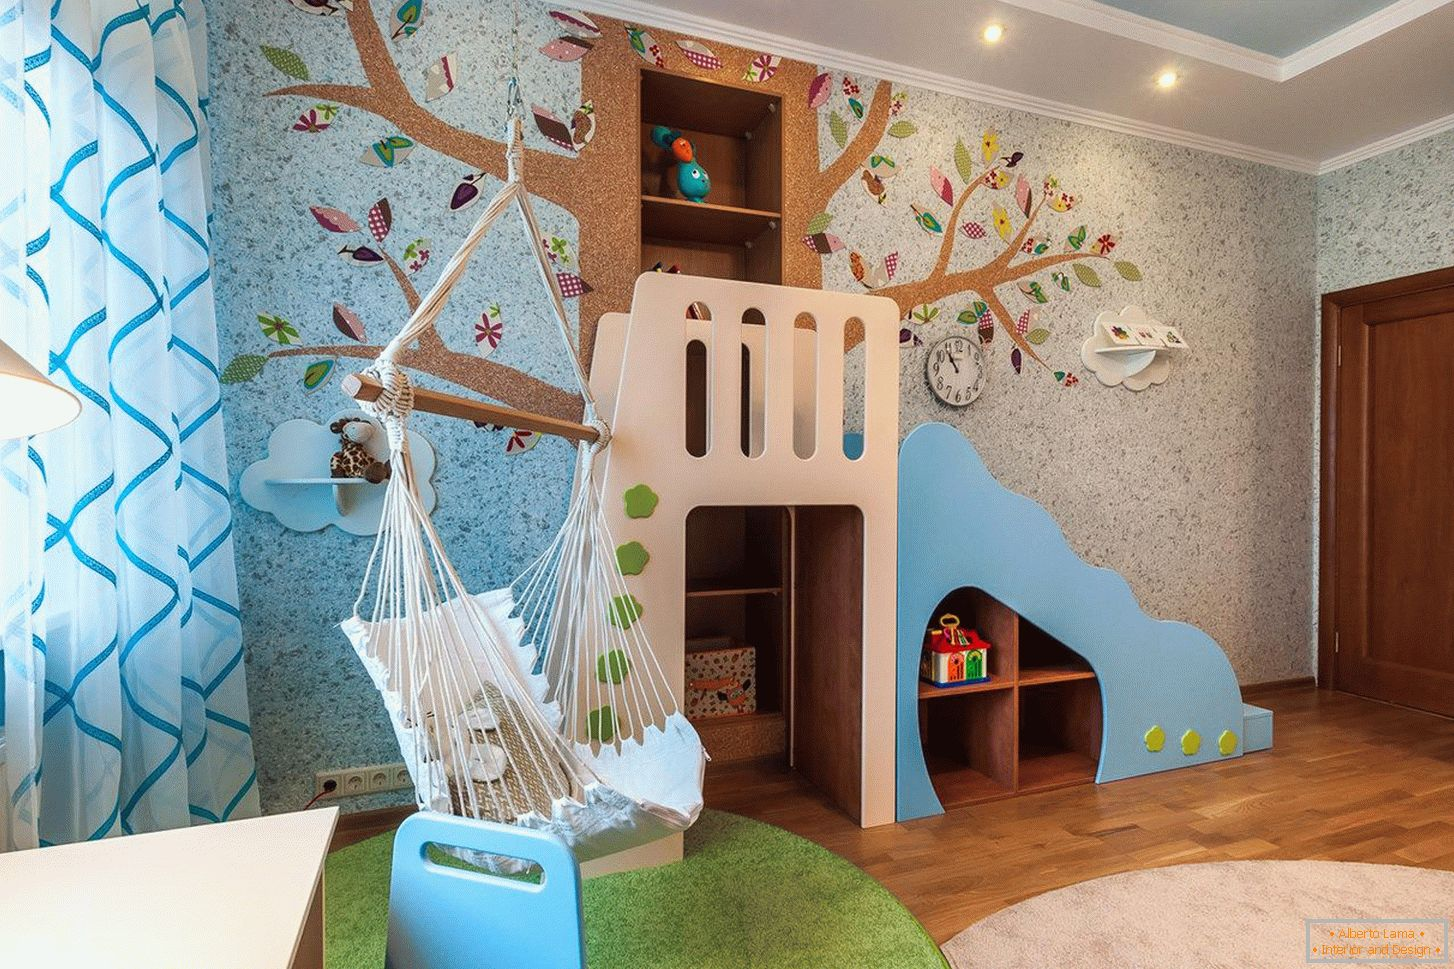 Wall design in the children's room